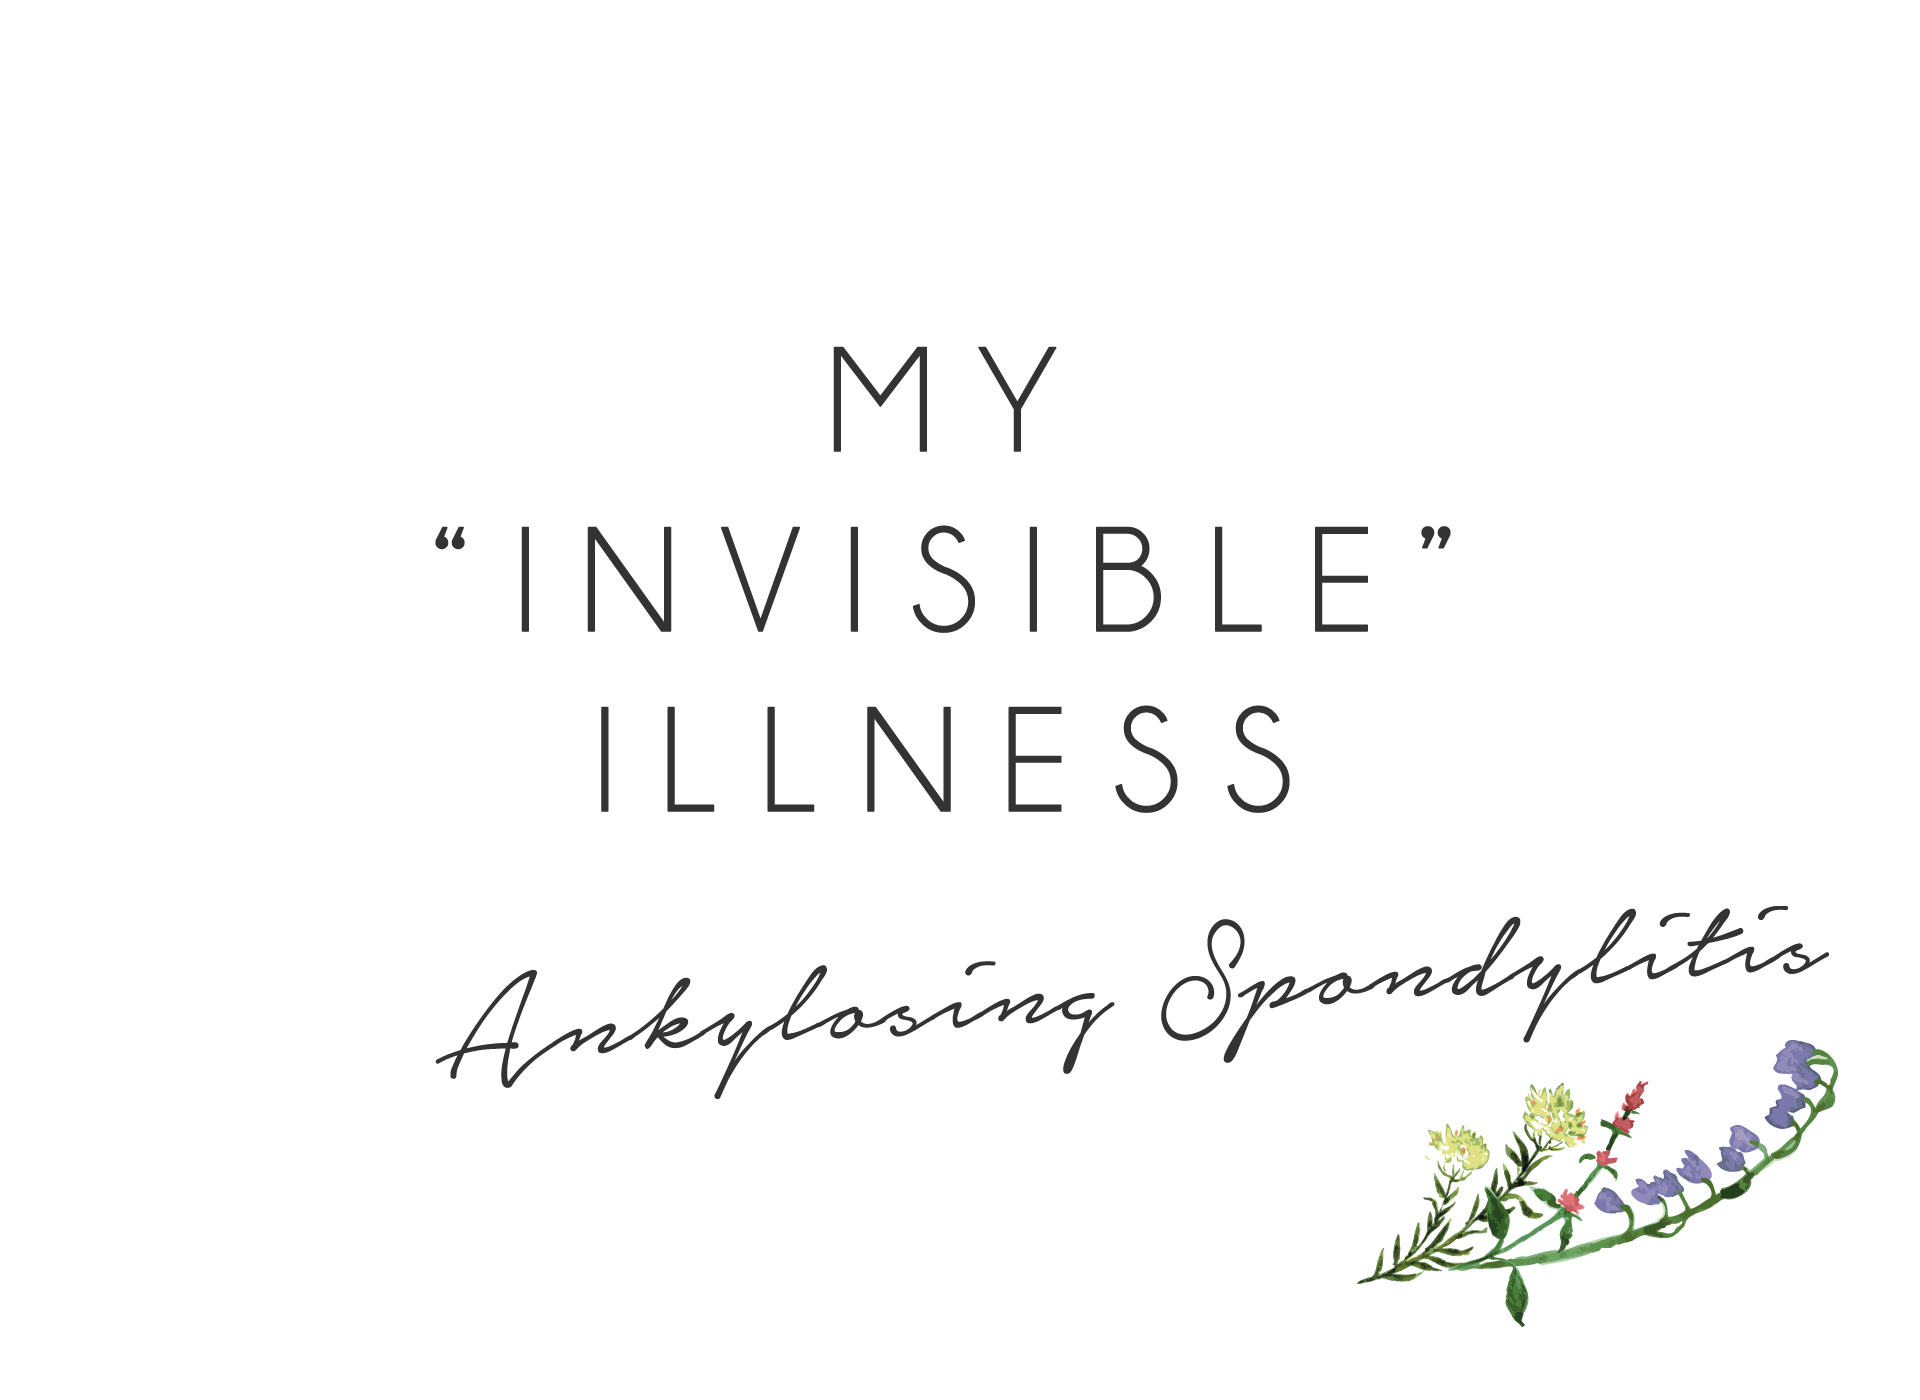 10 Things I want you to know about my invisible illness, Ankylosing Spondylitis